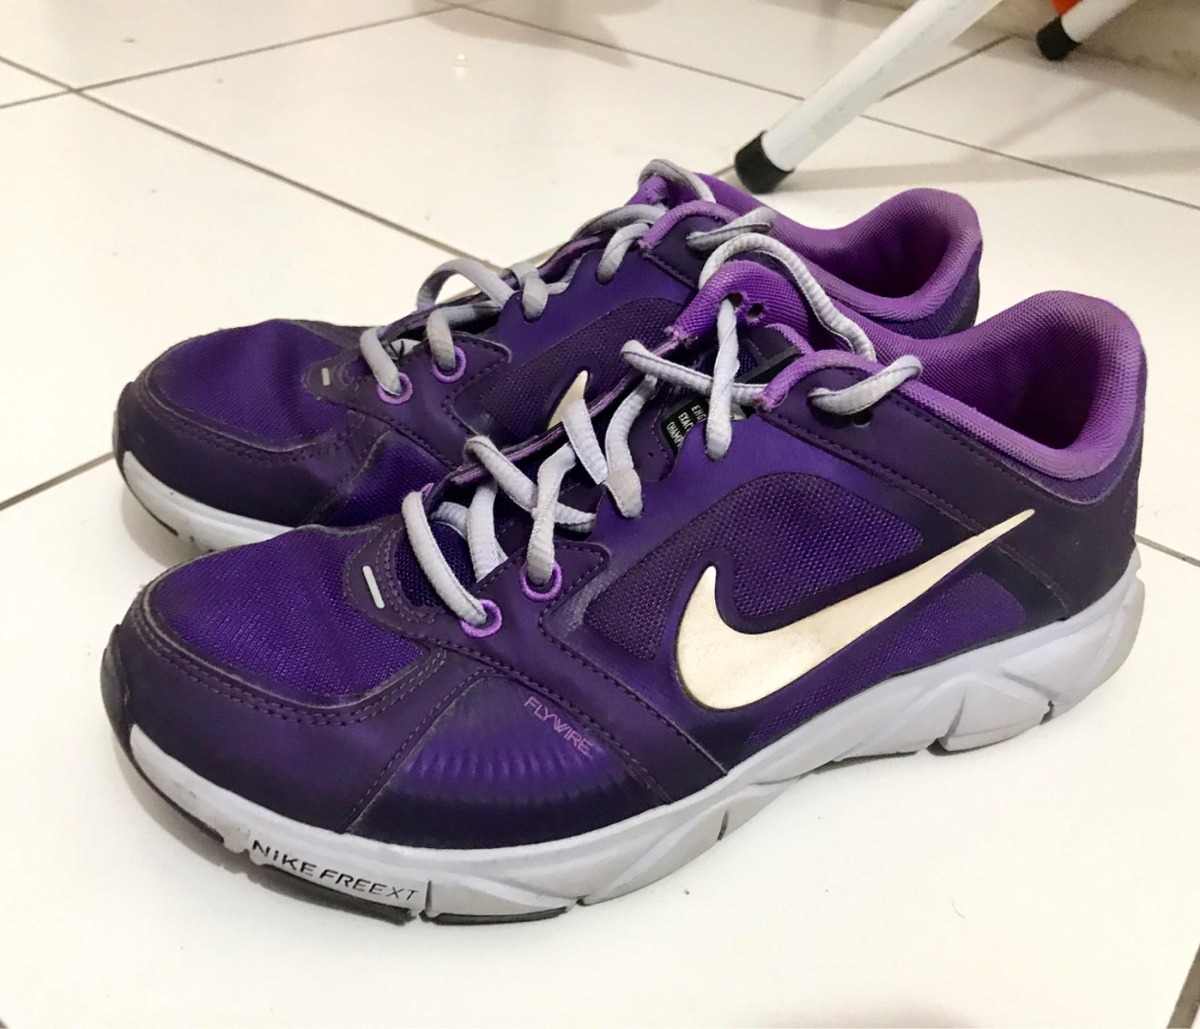 los angeles 9d05f 426c9 Zapatillas Nike Free Xt Flywire. - $ 1.200,00